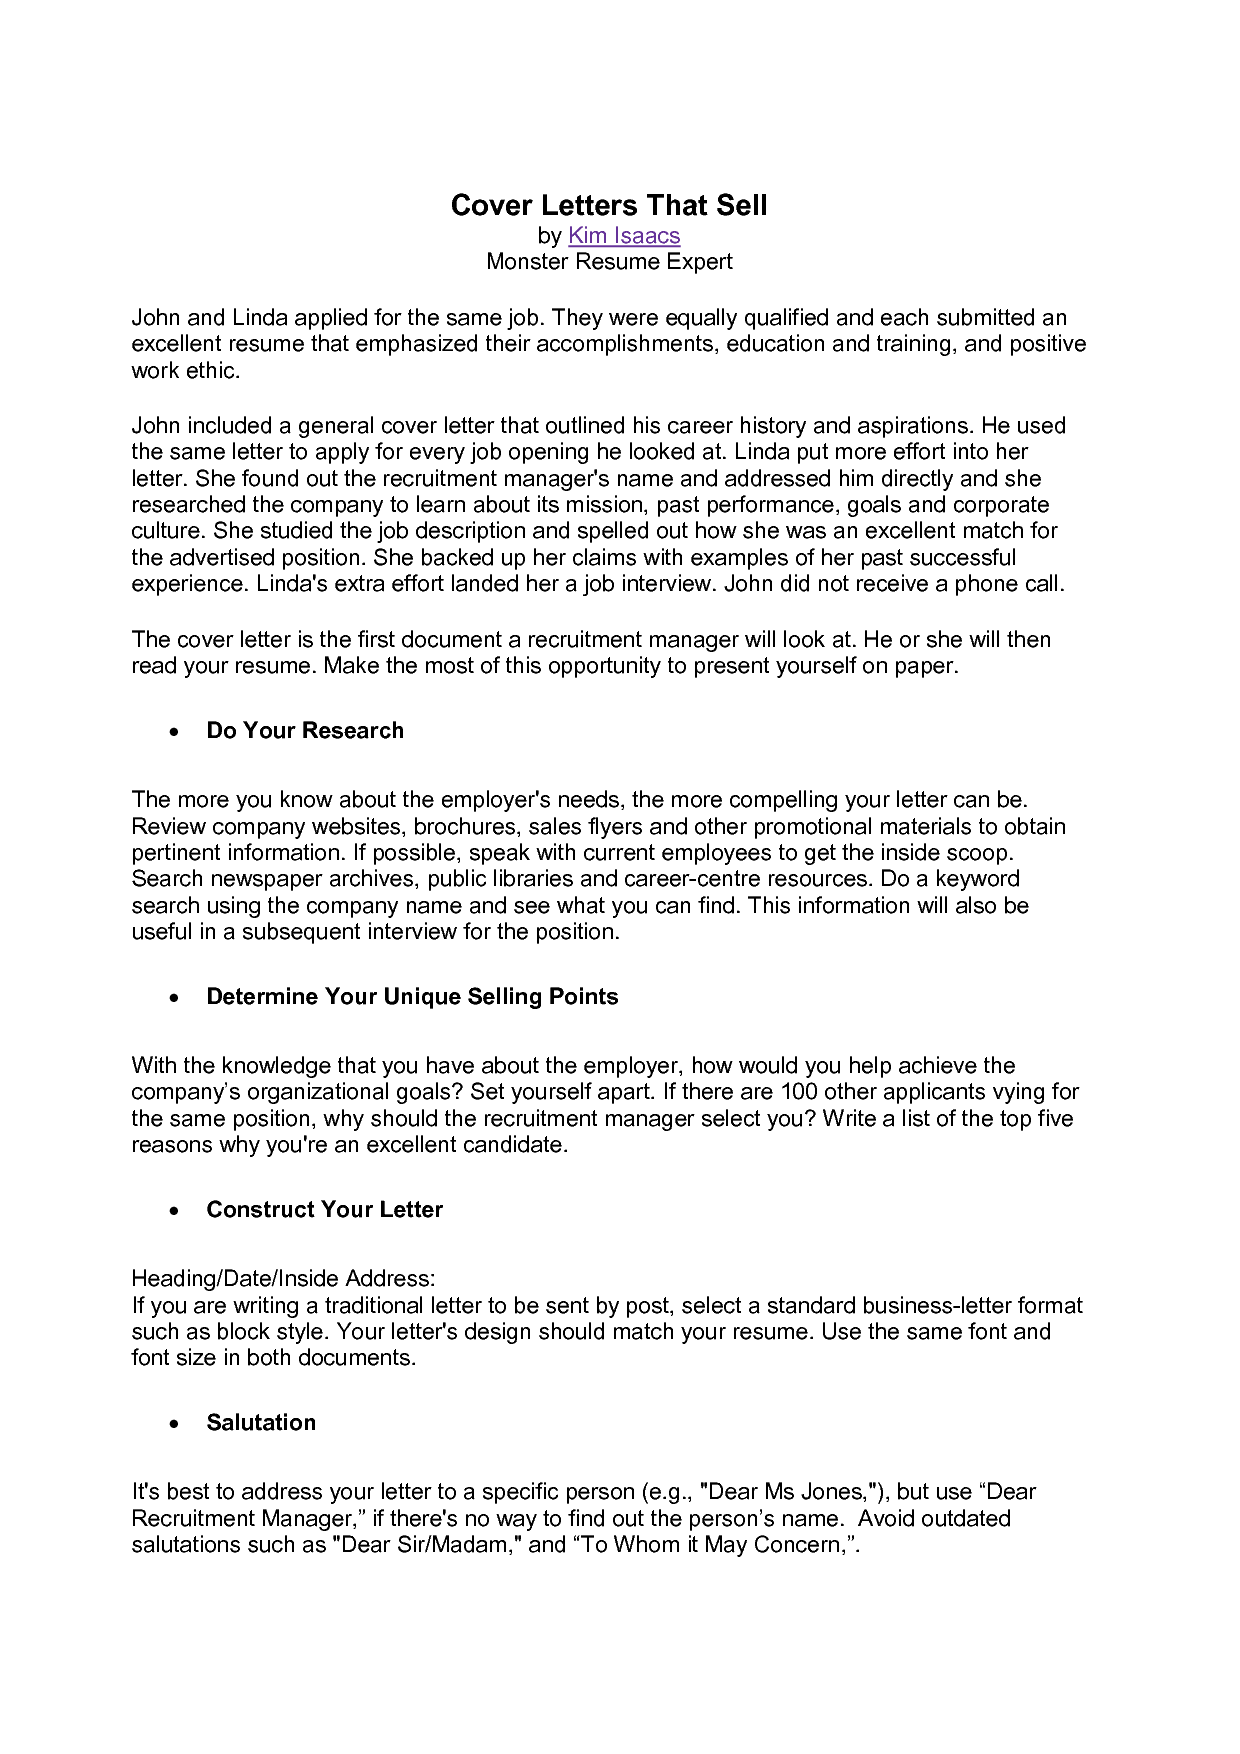 Resume Cover Letter Tips Monster Cover Letter Free Download Monster Cover Letter Monster